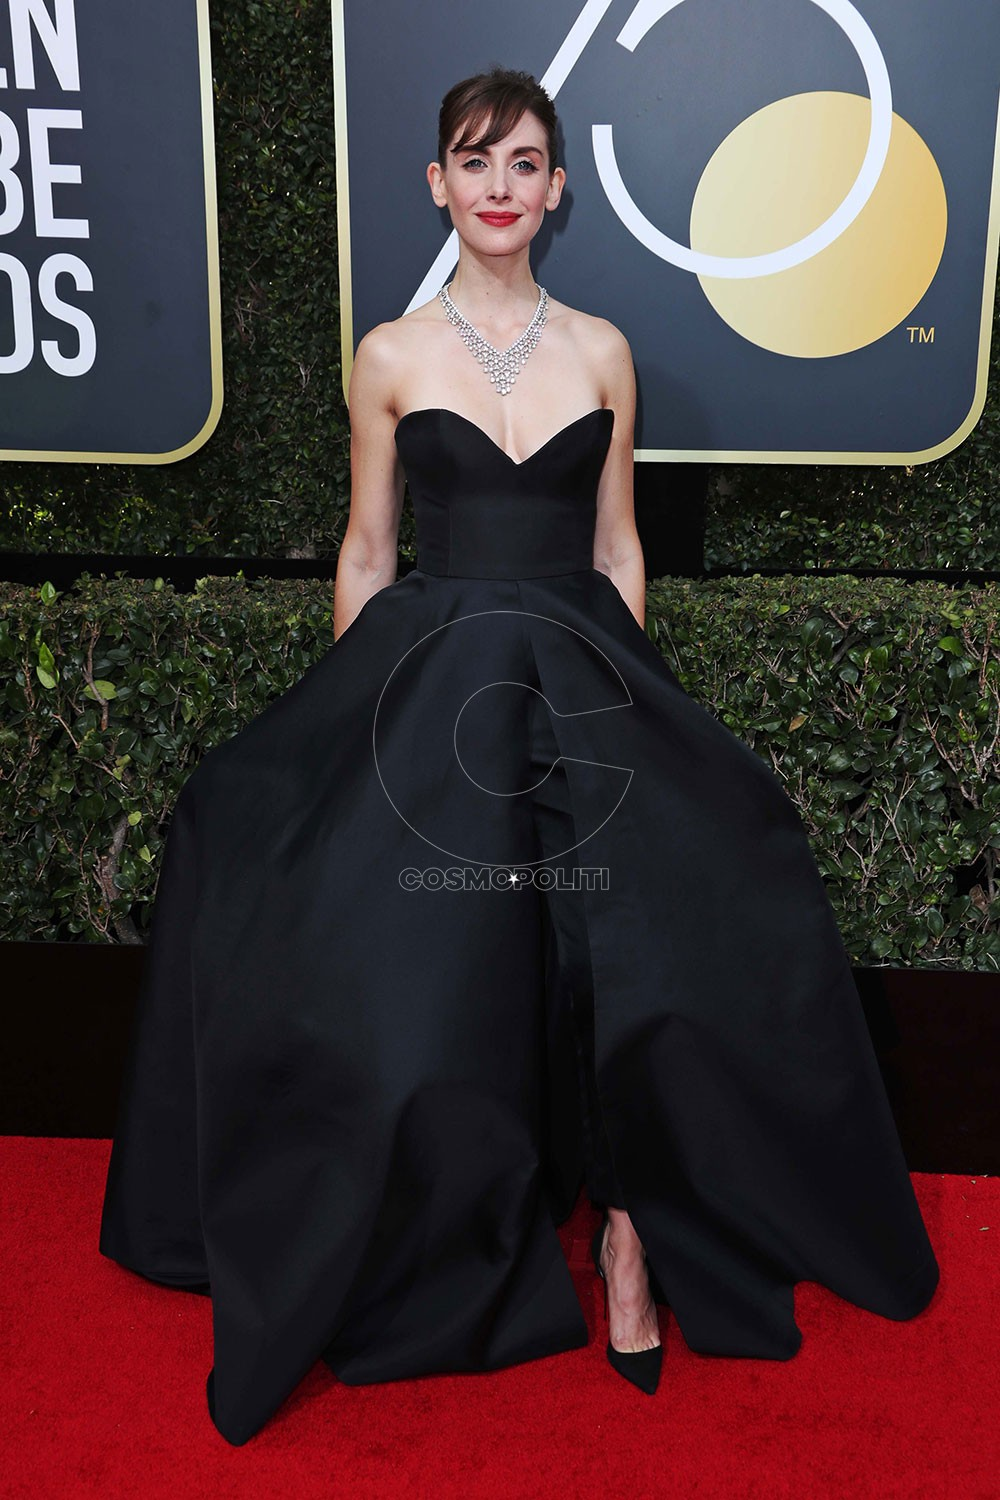 Alison-Brie-Golden-Globes-2018-Red-Carpet-18